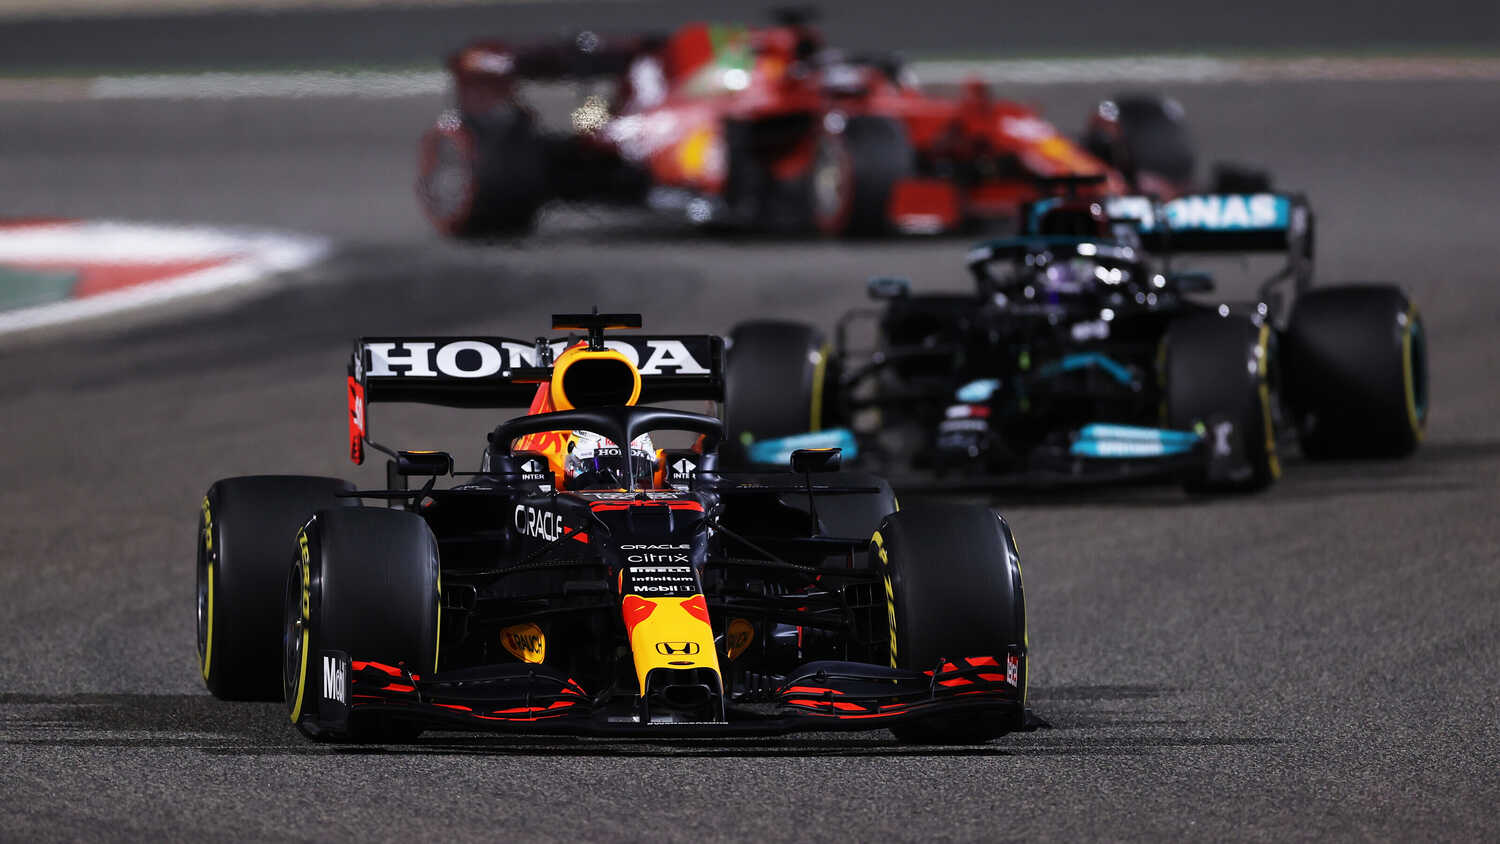 f1-2021-vr-support-2021